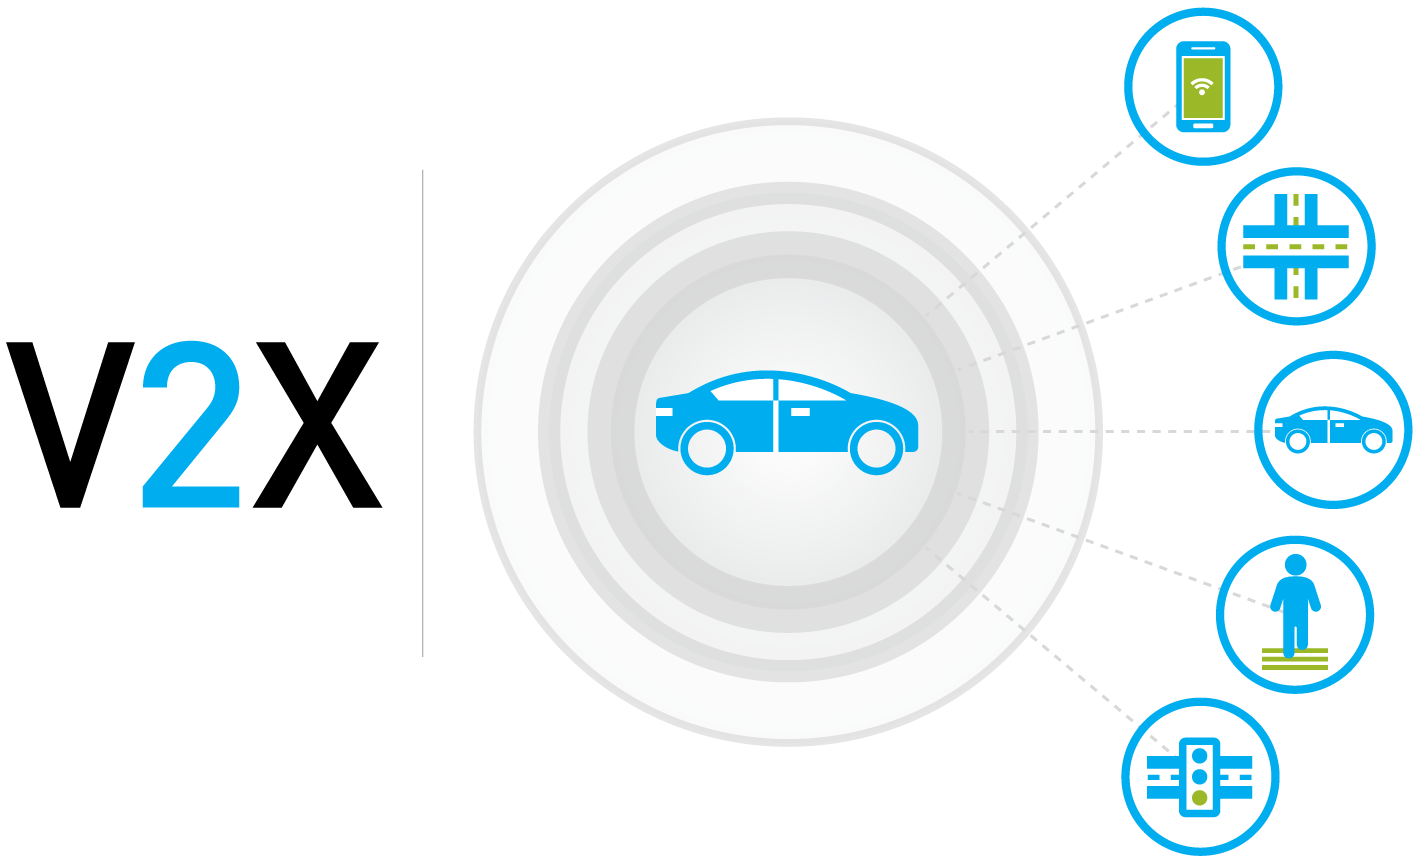 Vehicle-to-everything (V2X) technology connects vehicles, infrastructure and roadway operators